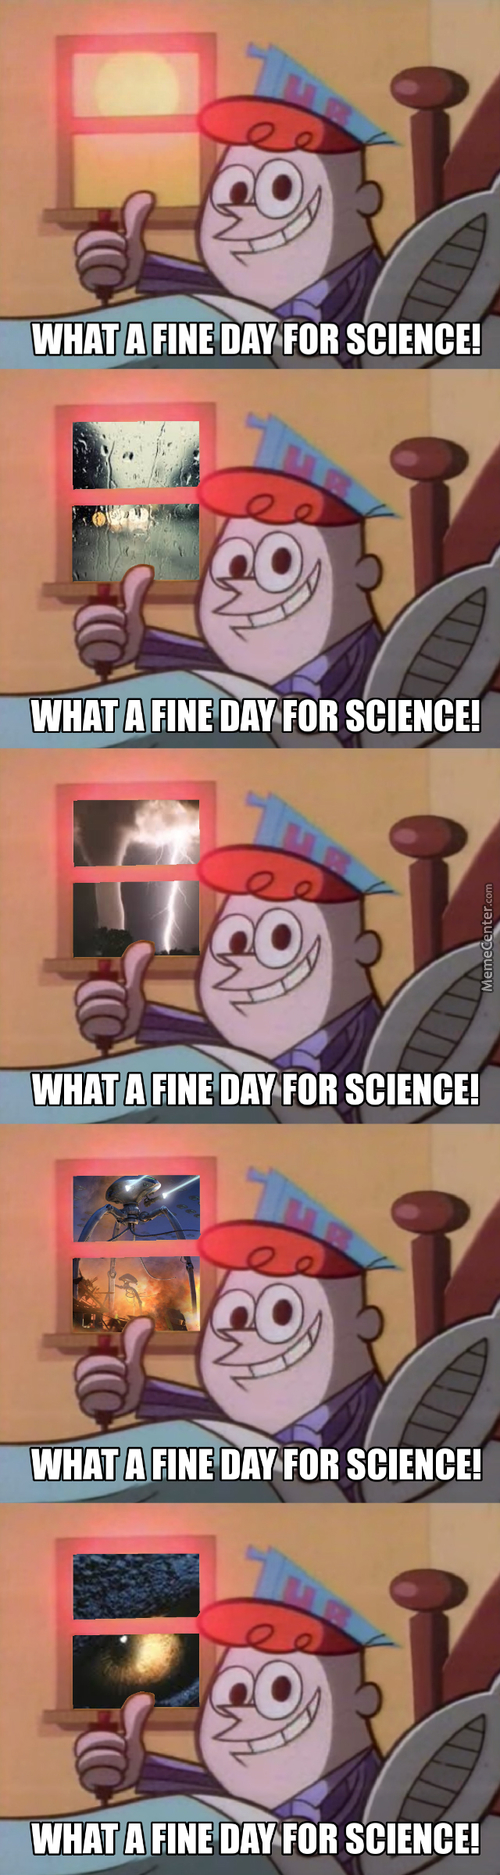 Every Day Is A Fine Day For Science ಠ_ಠ